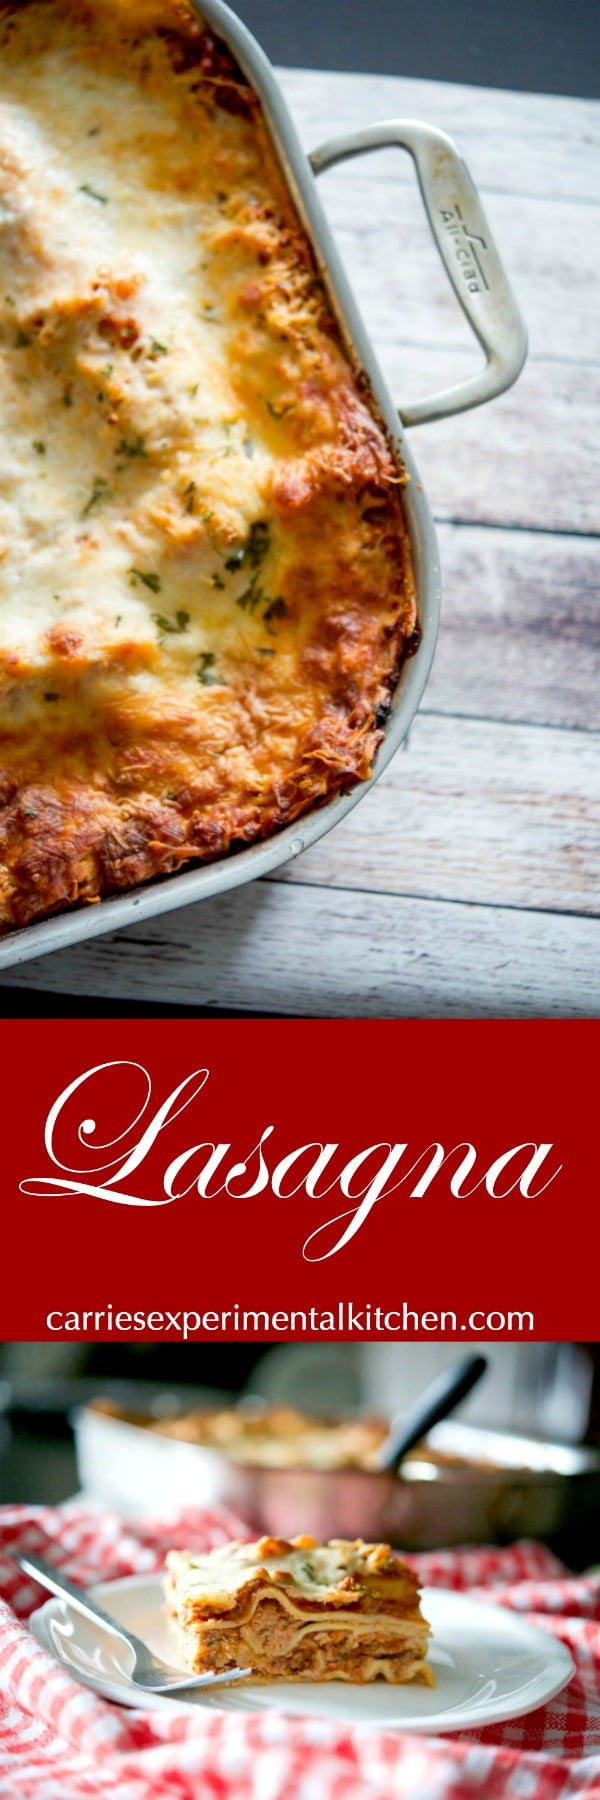 Lasagna made with a mixture of ricotta and mozzarella cheeses, layered with marinara sauce and cooked until hot and bubbly. It's the perfect Italian meal for large crowds or Sunday family dinners. #lasagna #pasta #sundaydinner